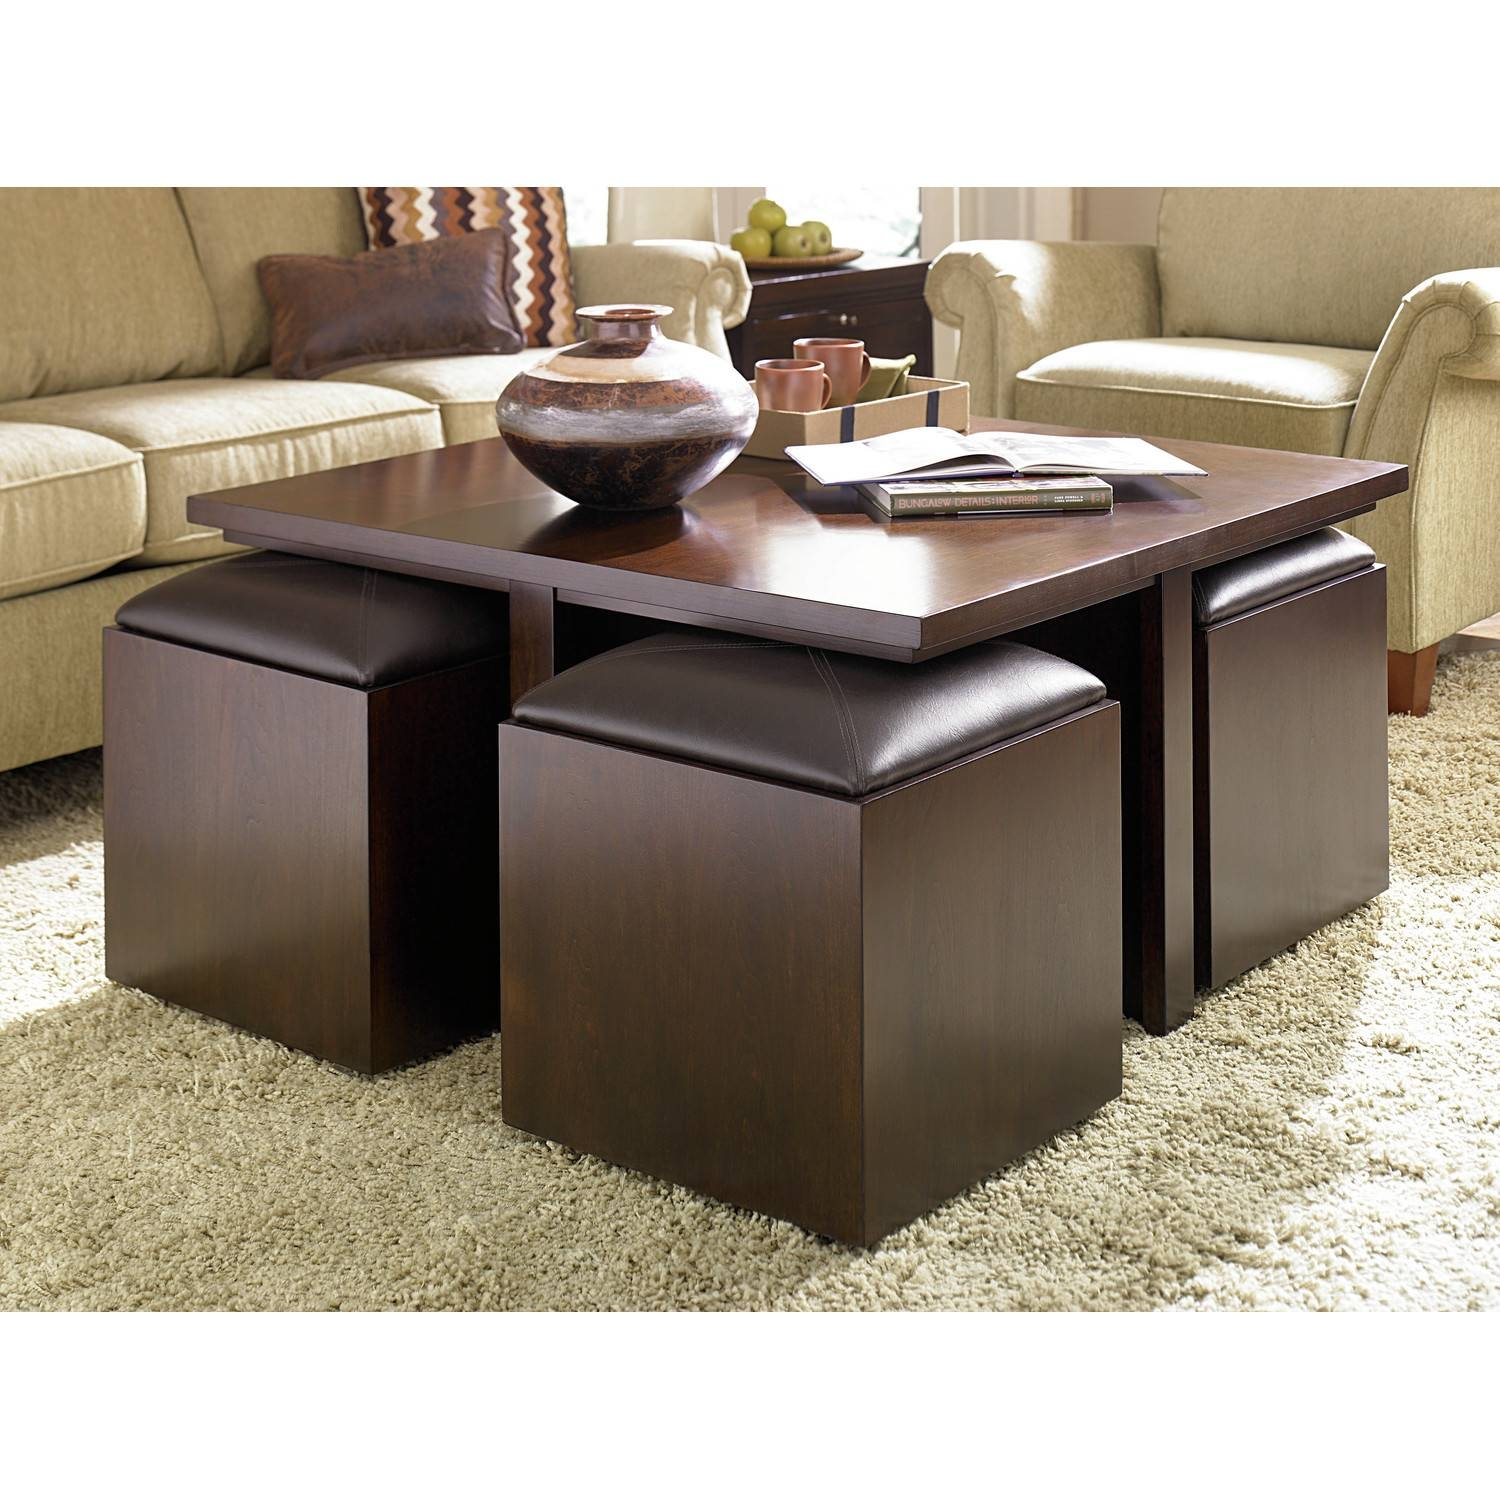 of leather image table tuffed style in coffee oversized tables